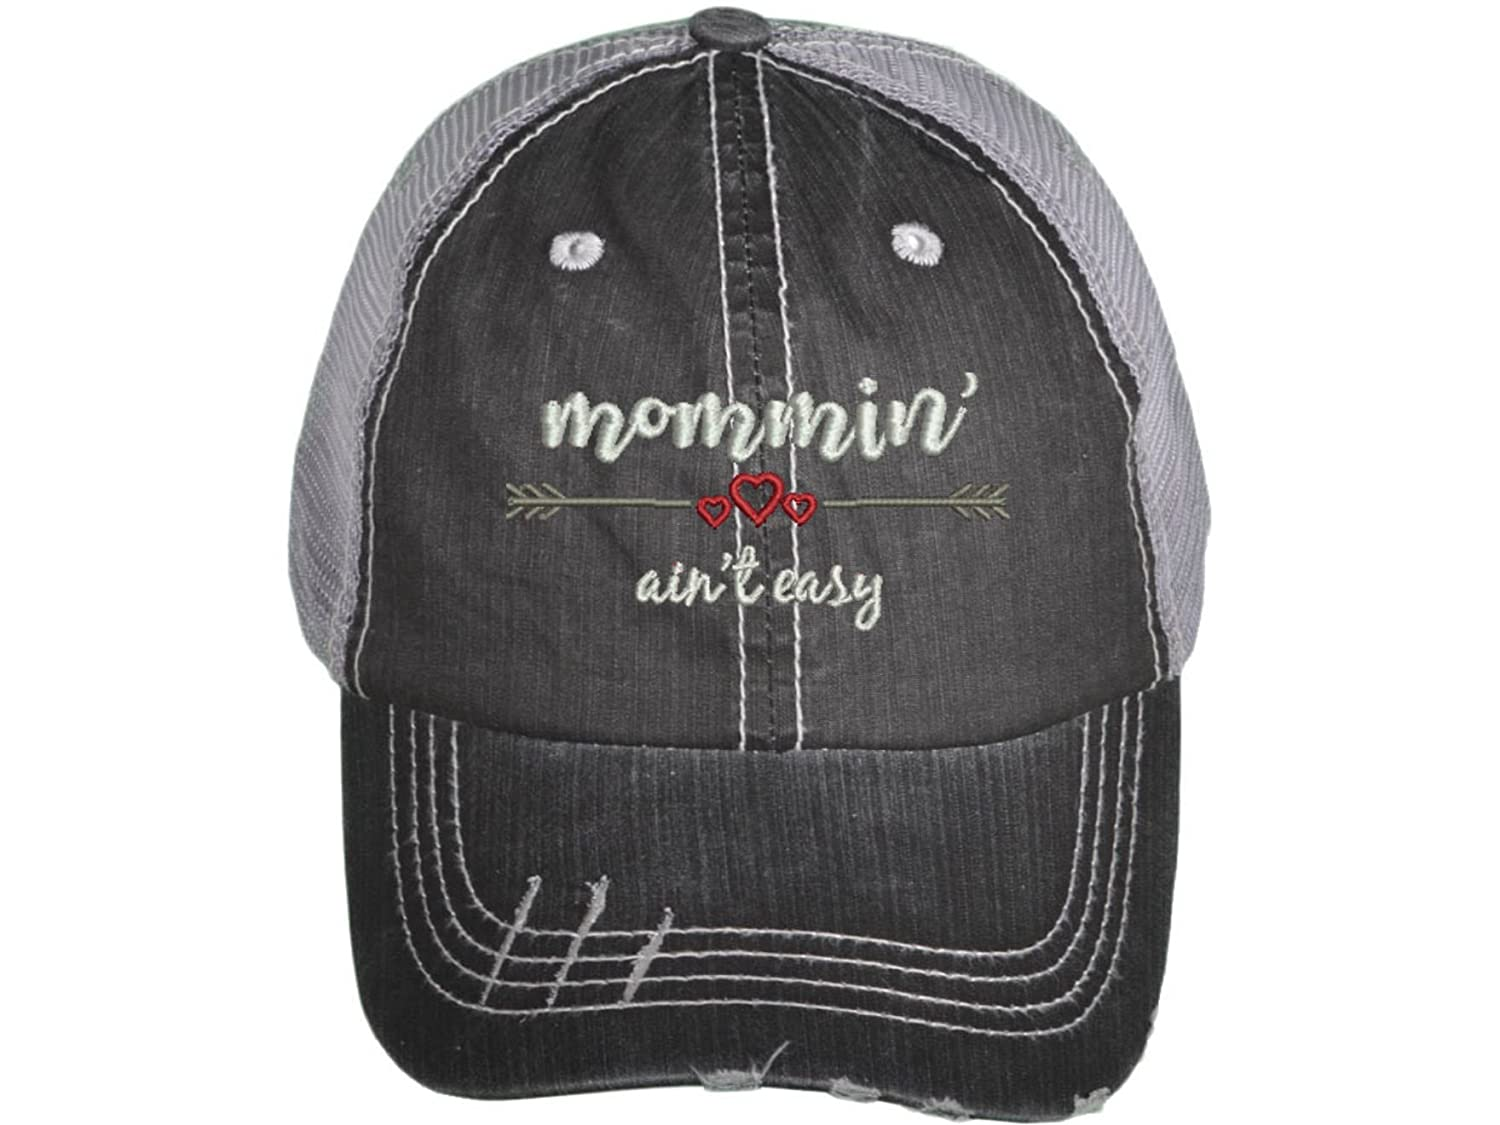 Mommin' Ain't Easy, Embroidered Hat for Mothers Day, Gifts for Mom, Women's Distressed Trucker Hat Mommin' Ain't Easy